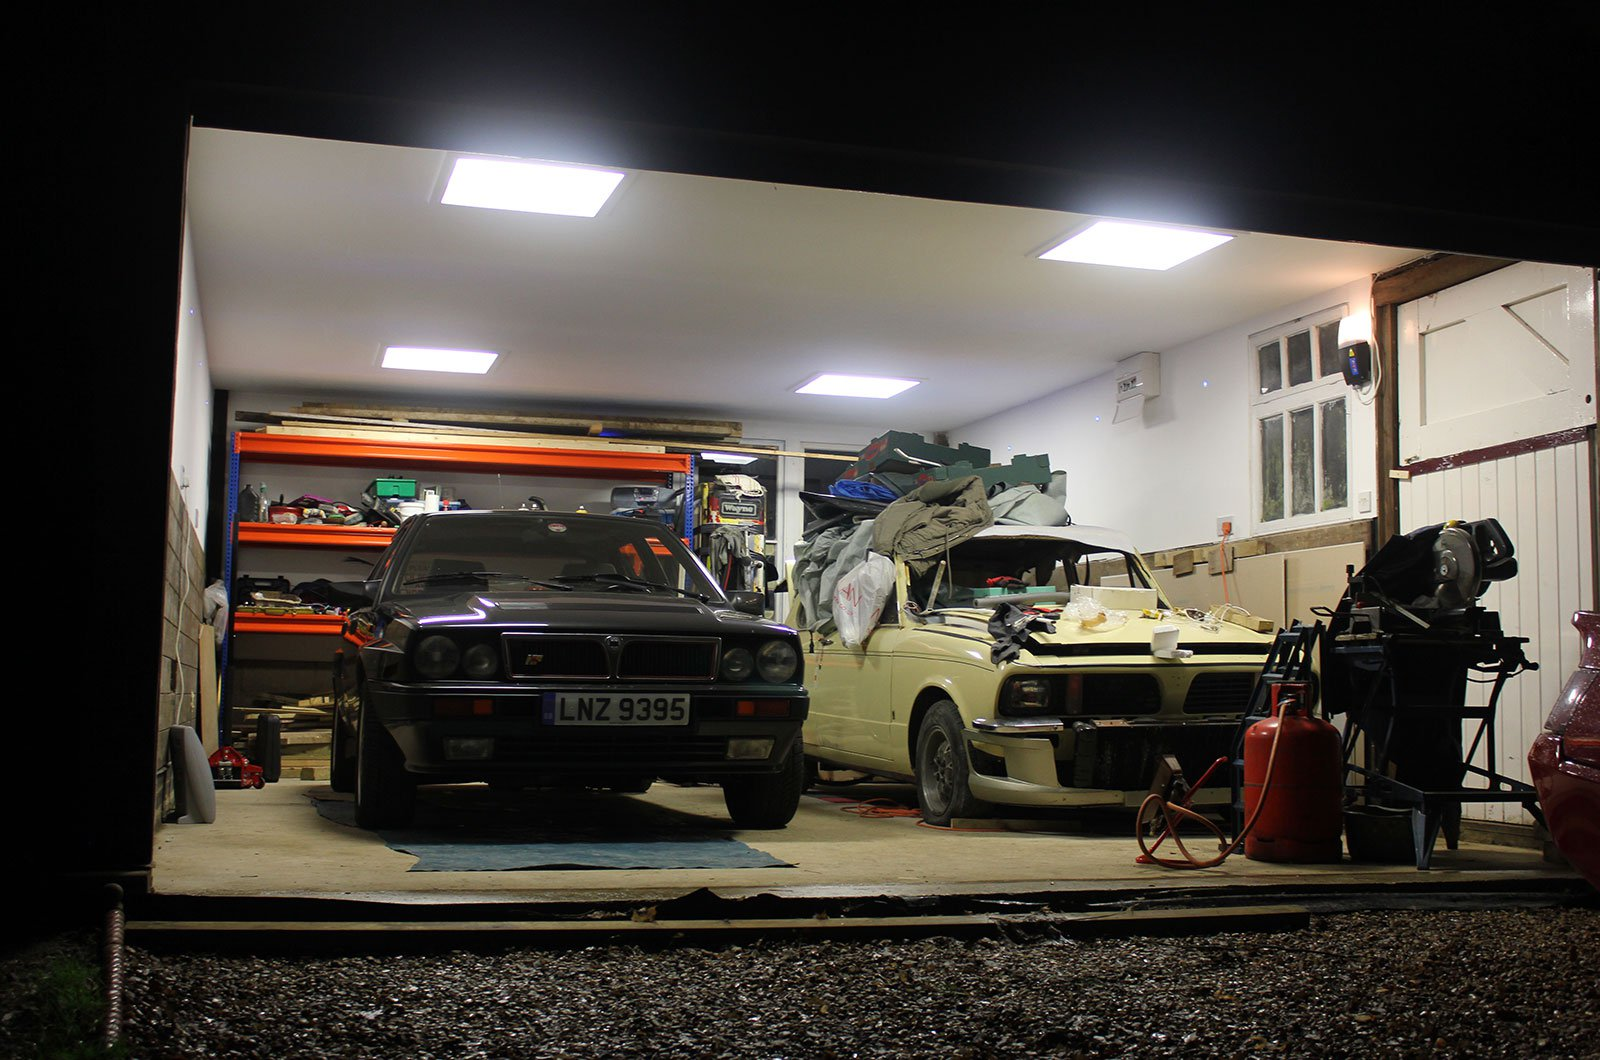 Two cars sitting in a garage